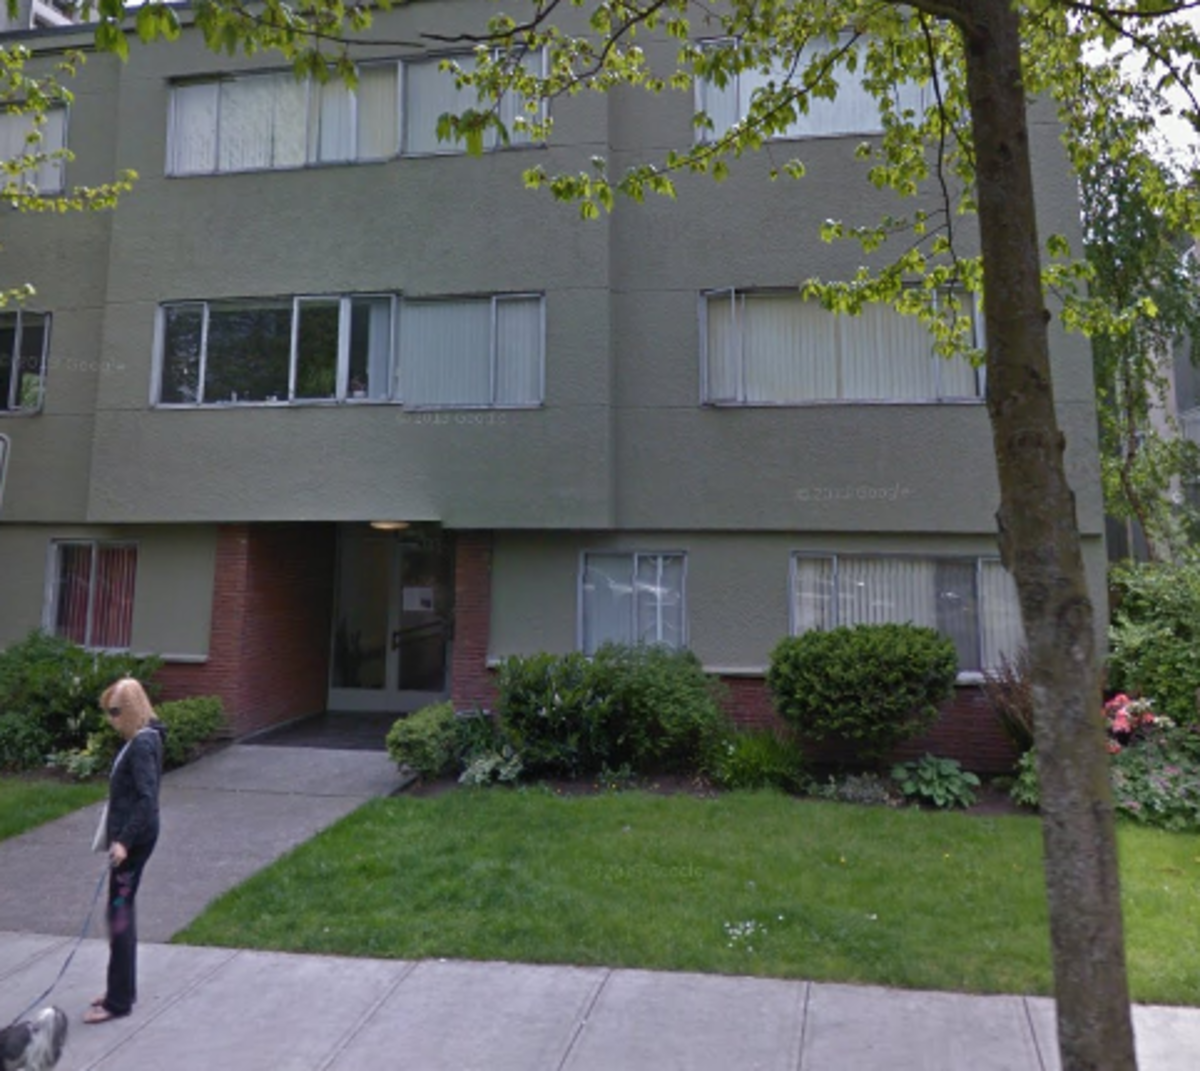 An apartment block typical of that occupied by  young families in Vancouver's densely-populated West End in the 1970s